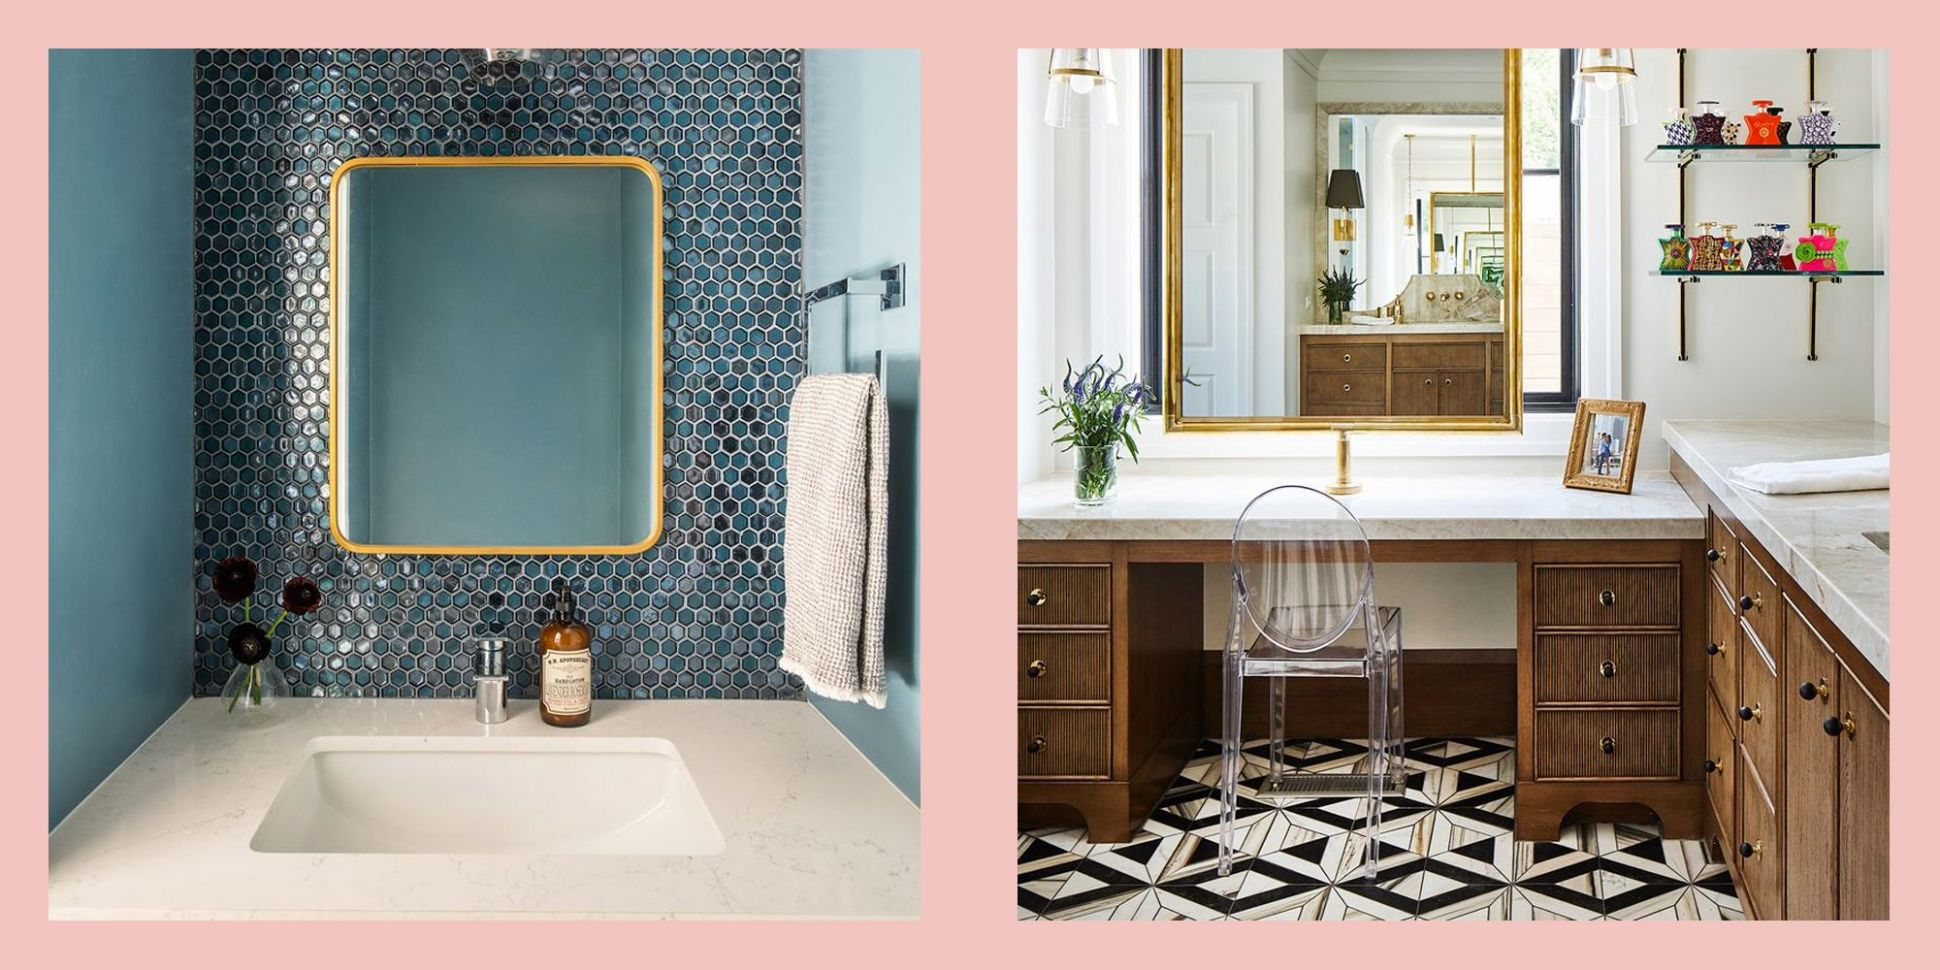 Top Bathroom Trends of 11 - What Bathroom Styles Are In - bathroom ideas elle decor